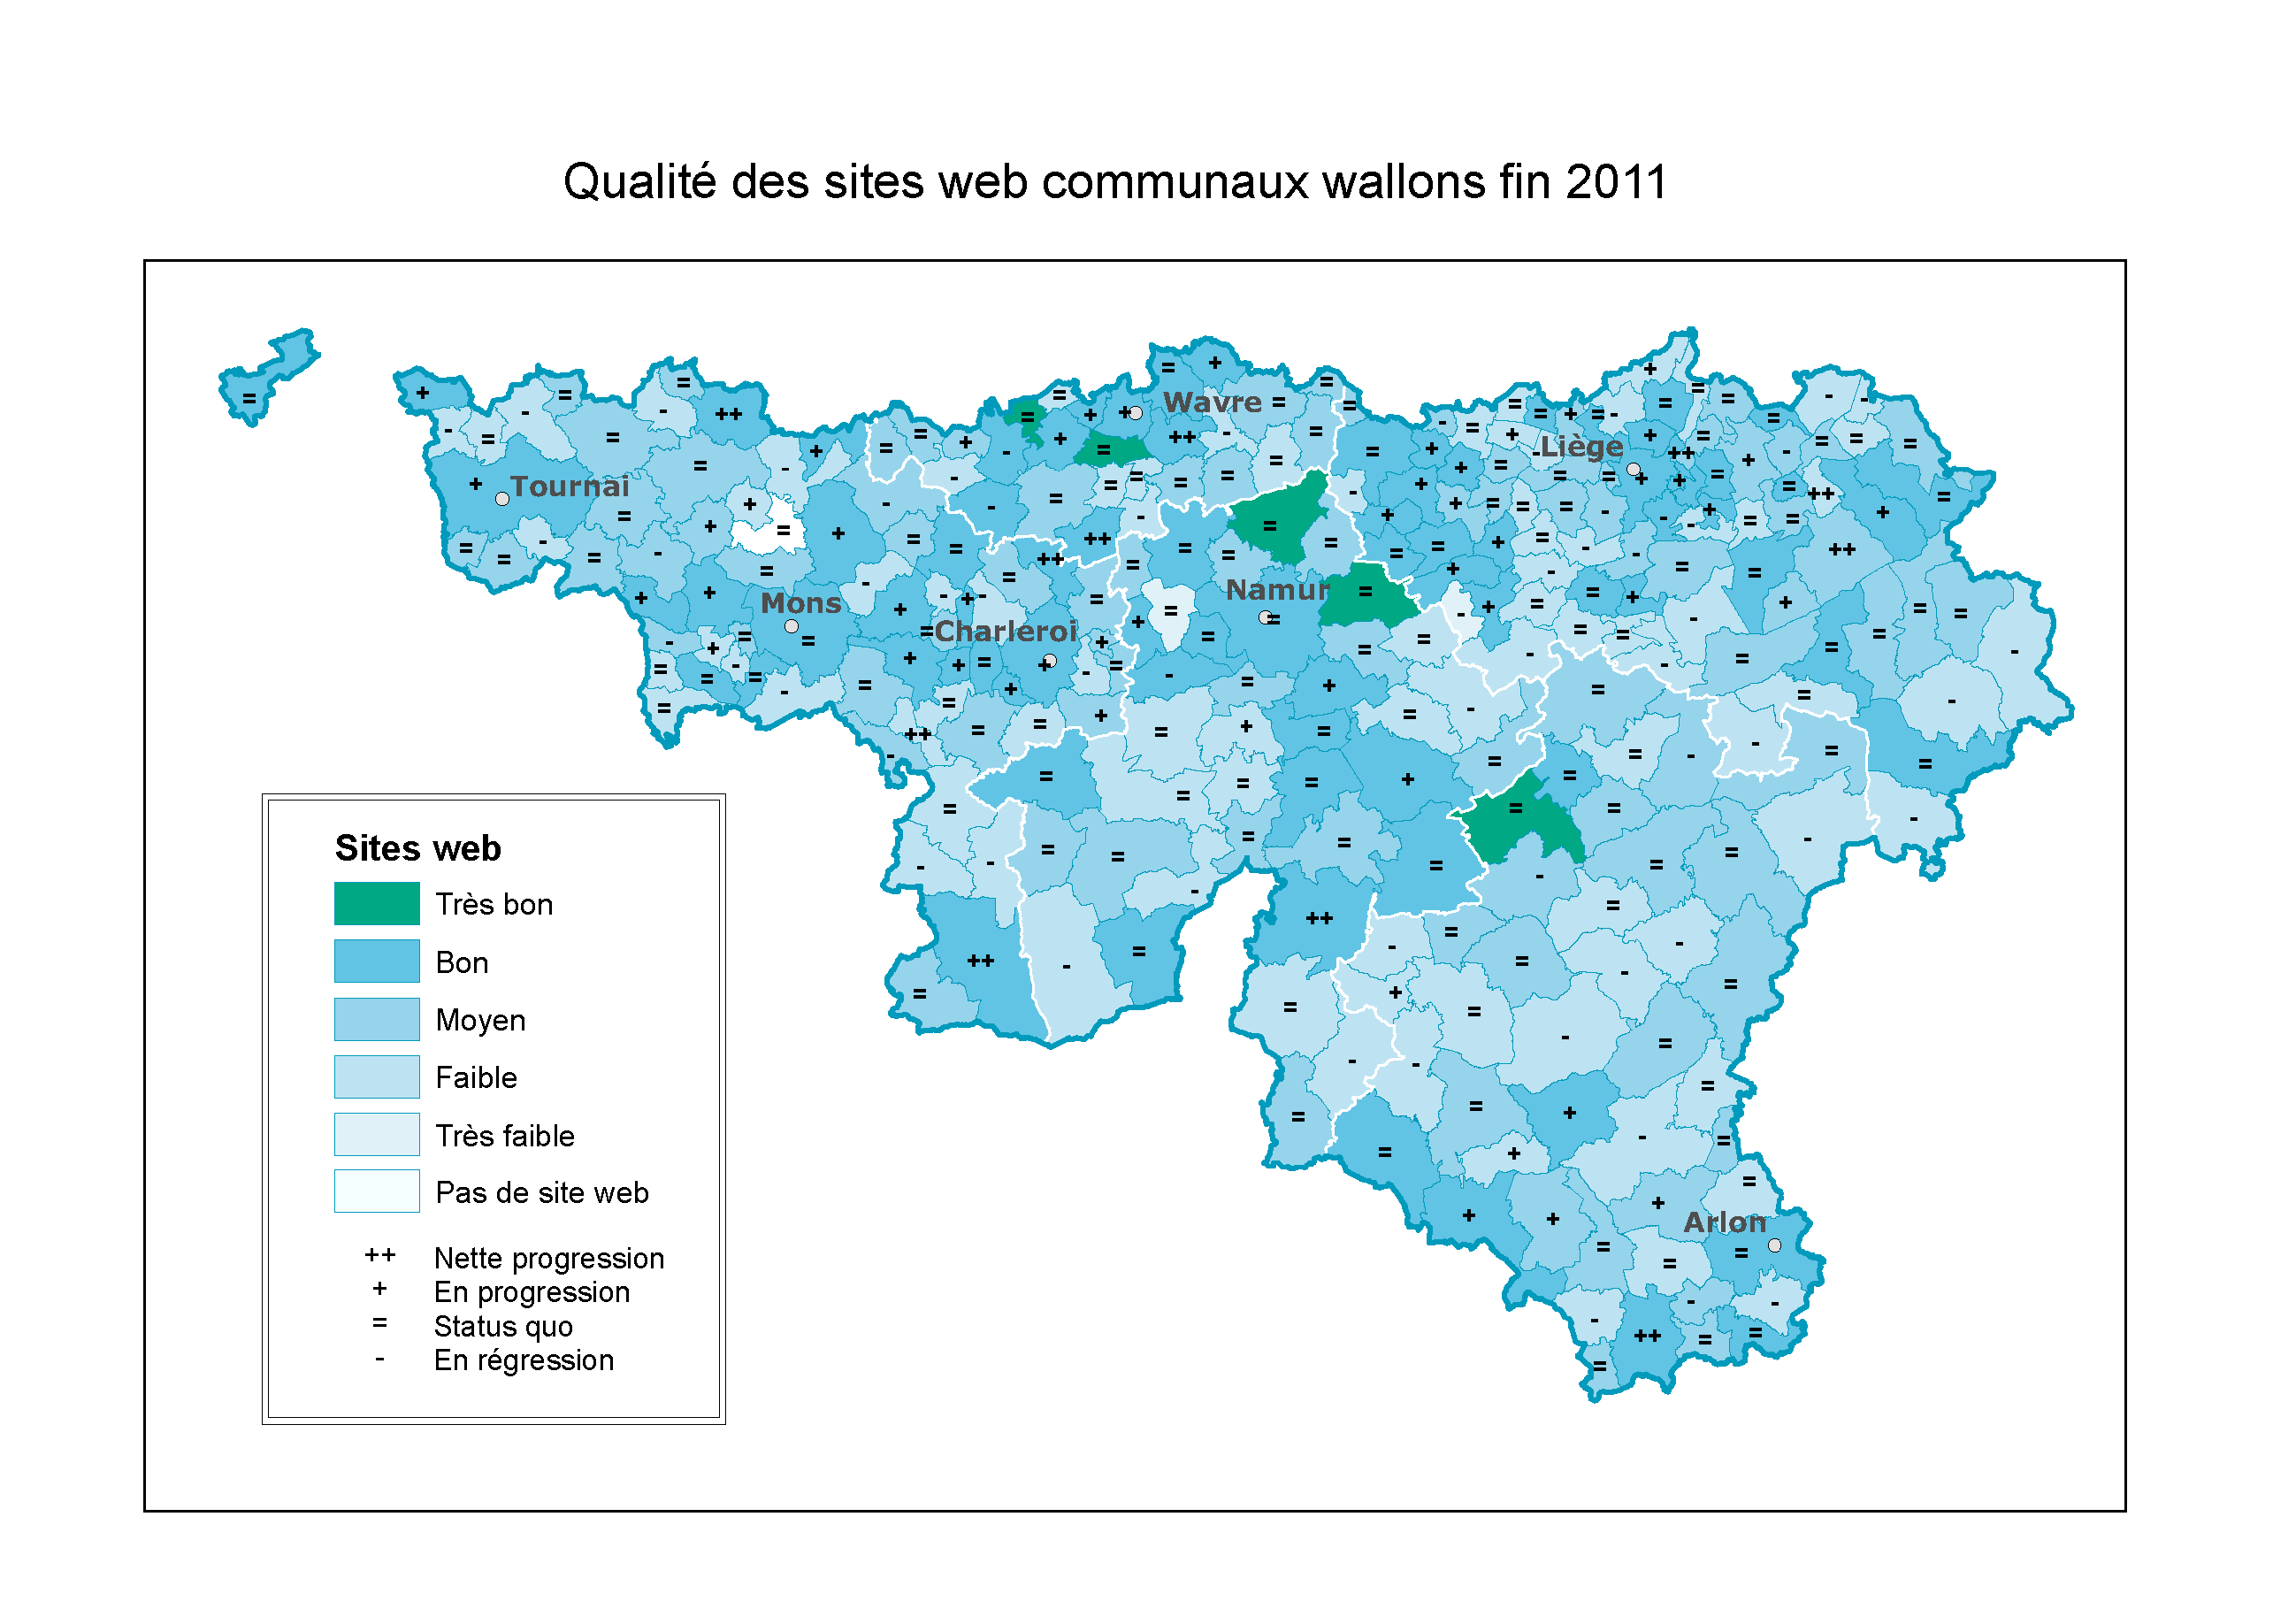 Les sites web communaux wallons